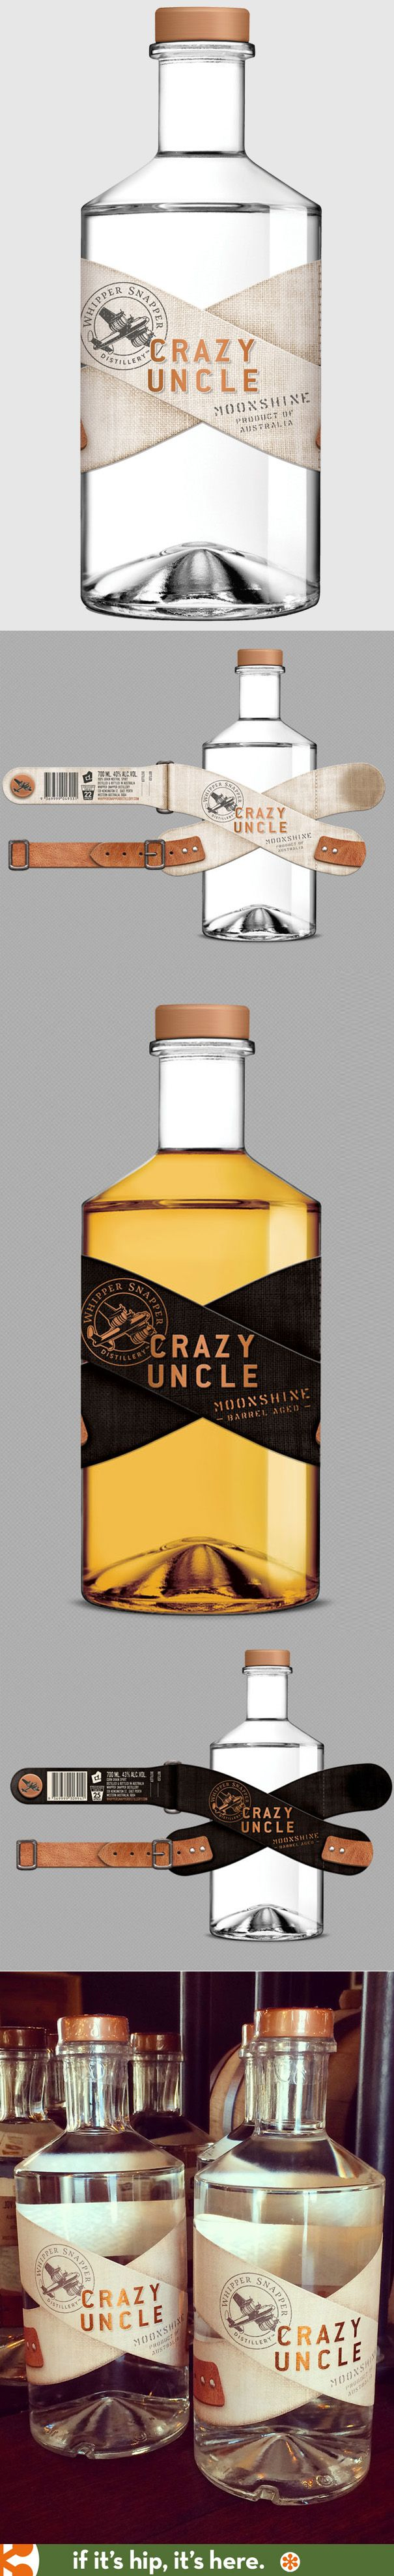 The label designs for Australia's Crazy Uncle Moonshine were inspired by a strait jacket and designed by Zendoke.